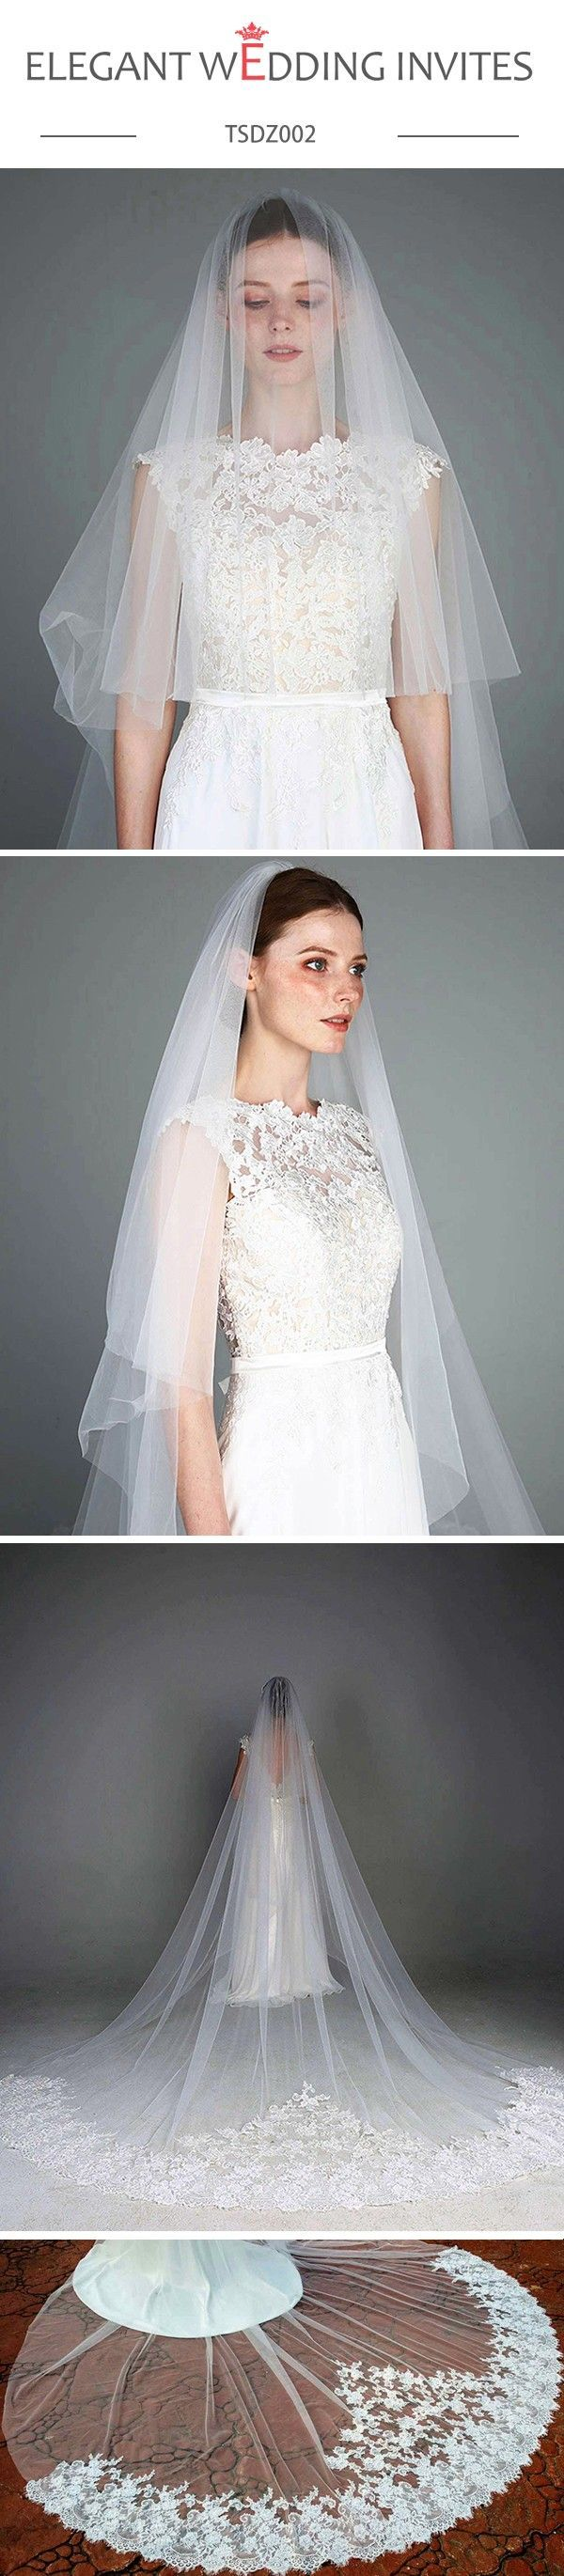 Cathedral veil romantic tiers lace wedding bridal veil boho